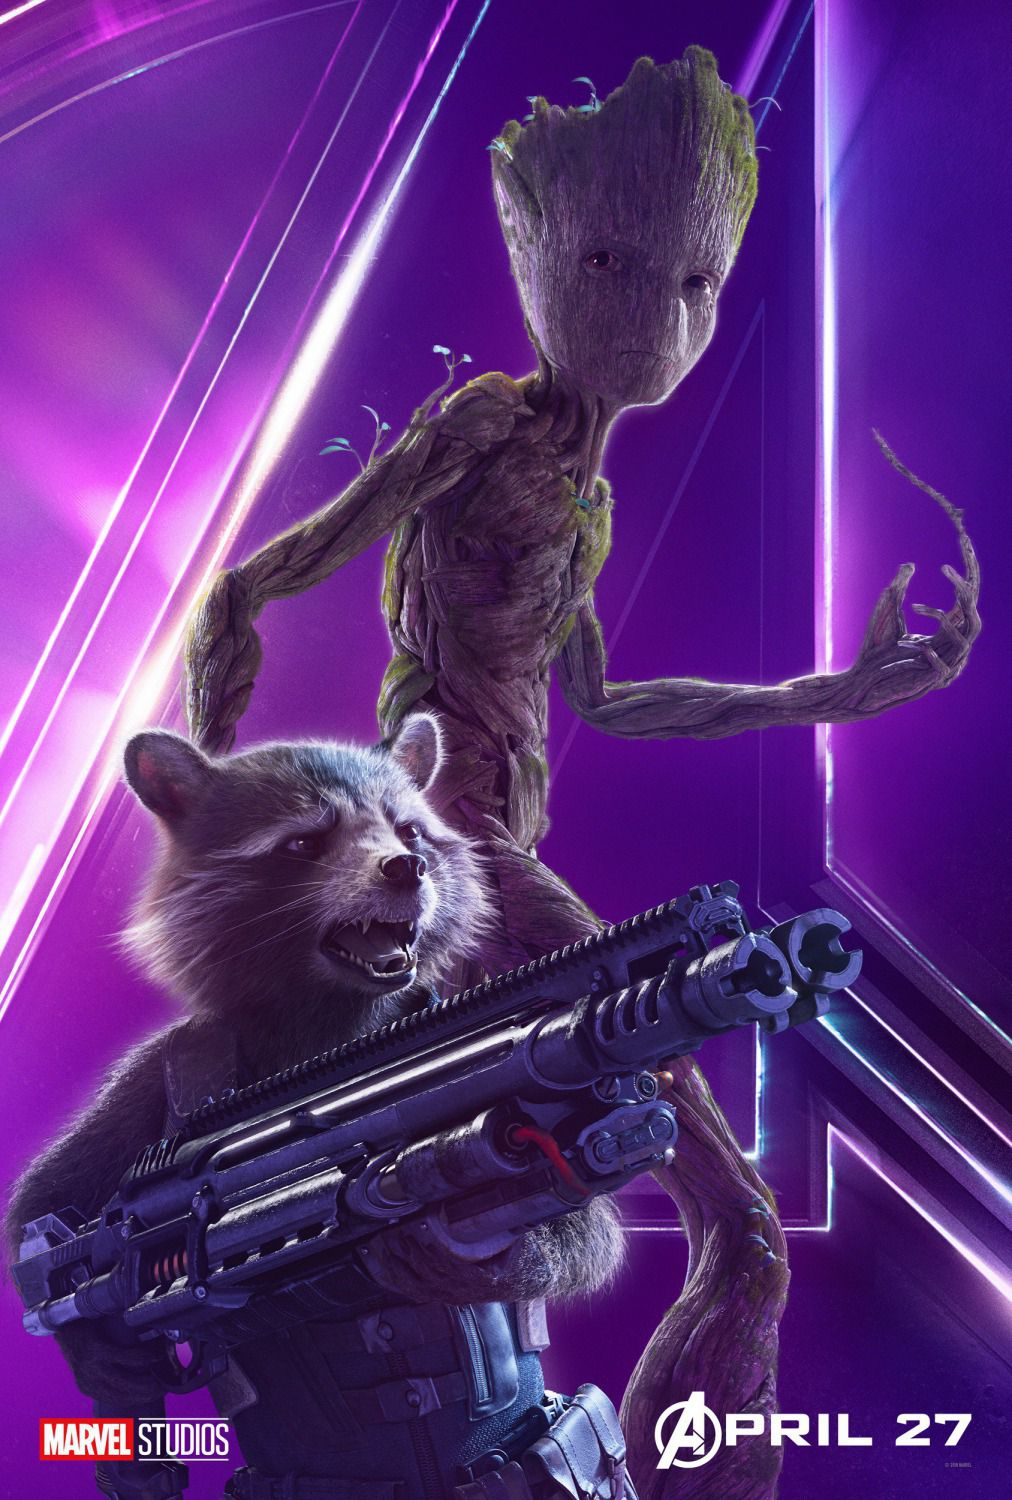 Groot - Rocket Raccoon